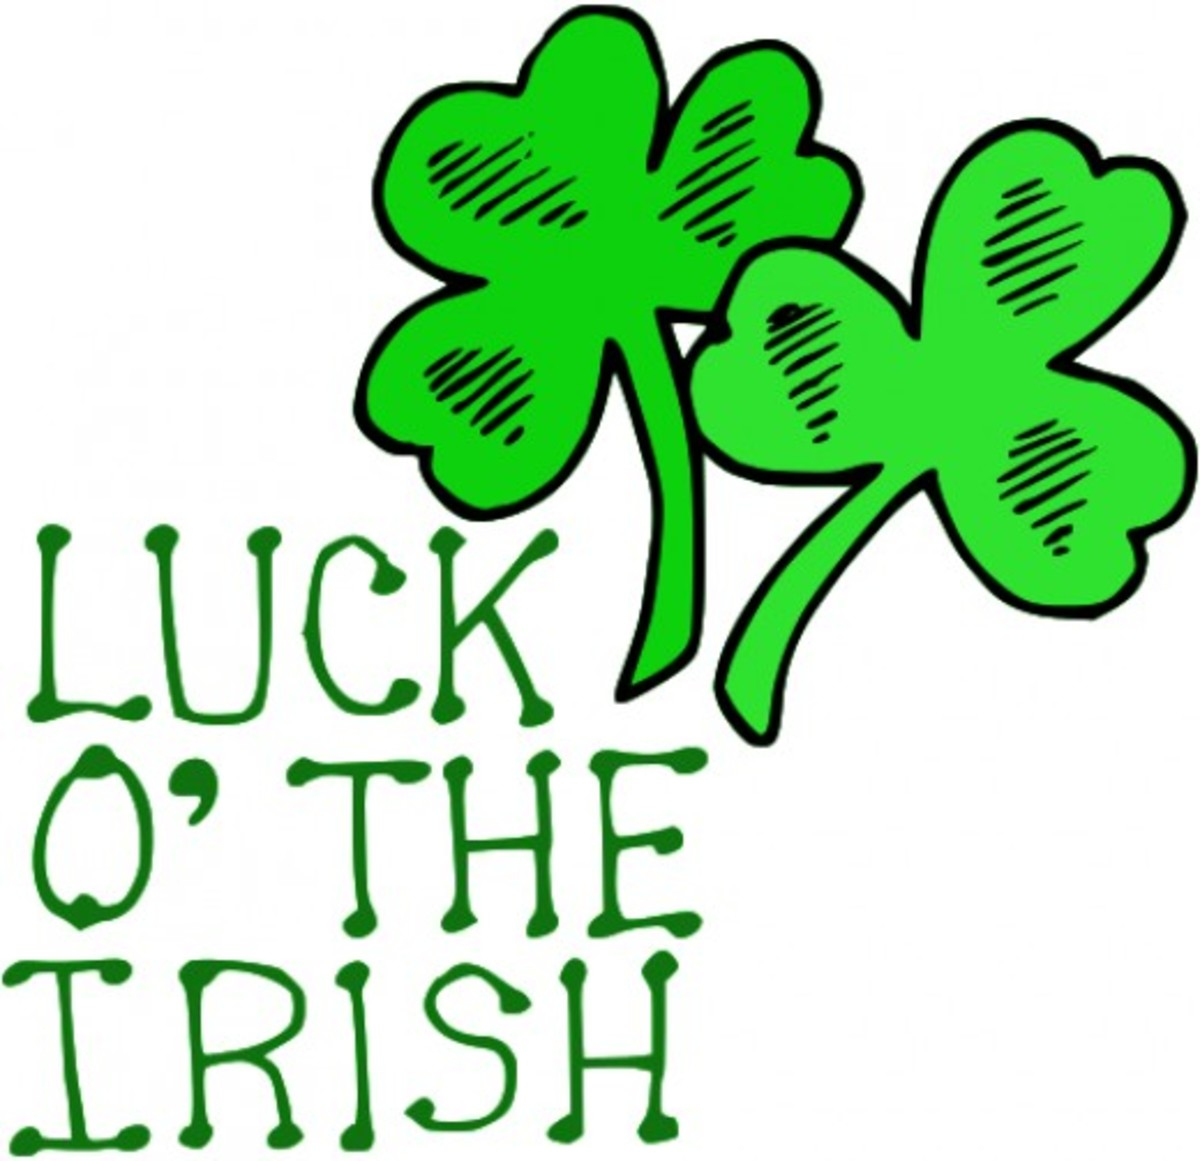 'Luck O' the Irish' with Shamrocks